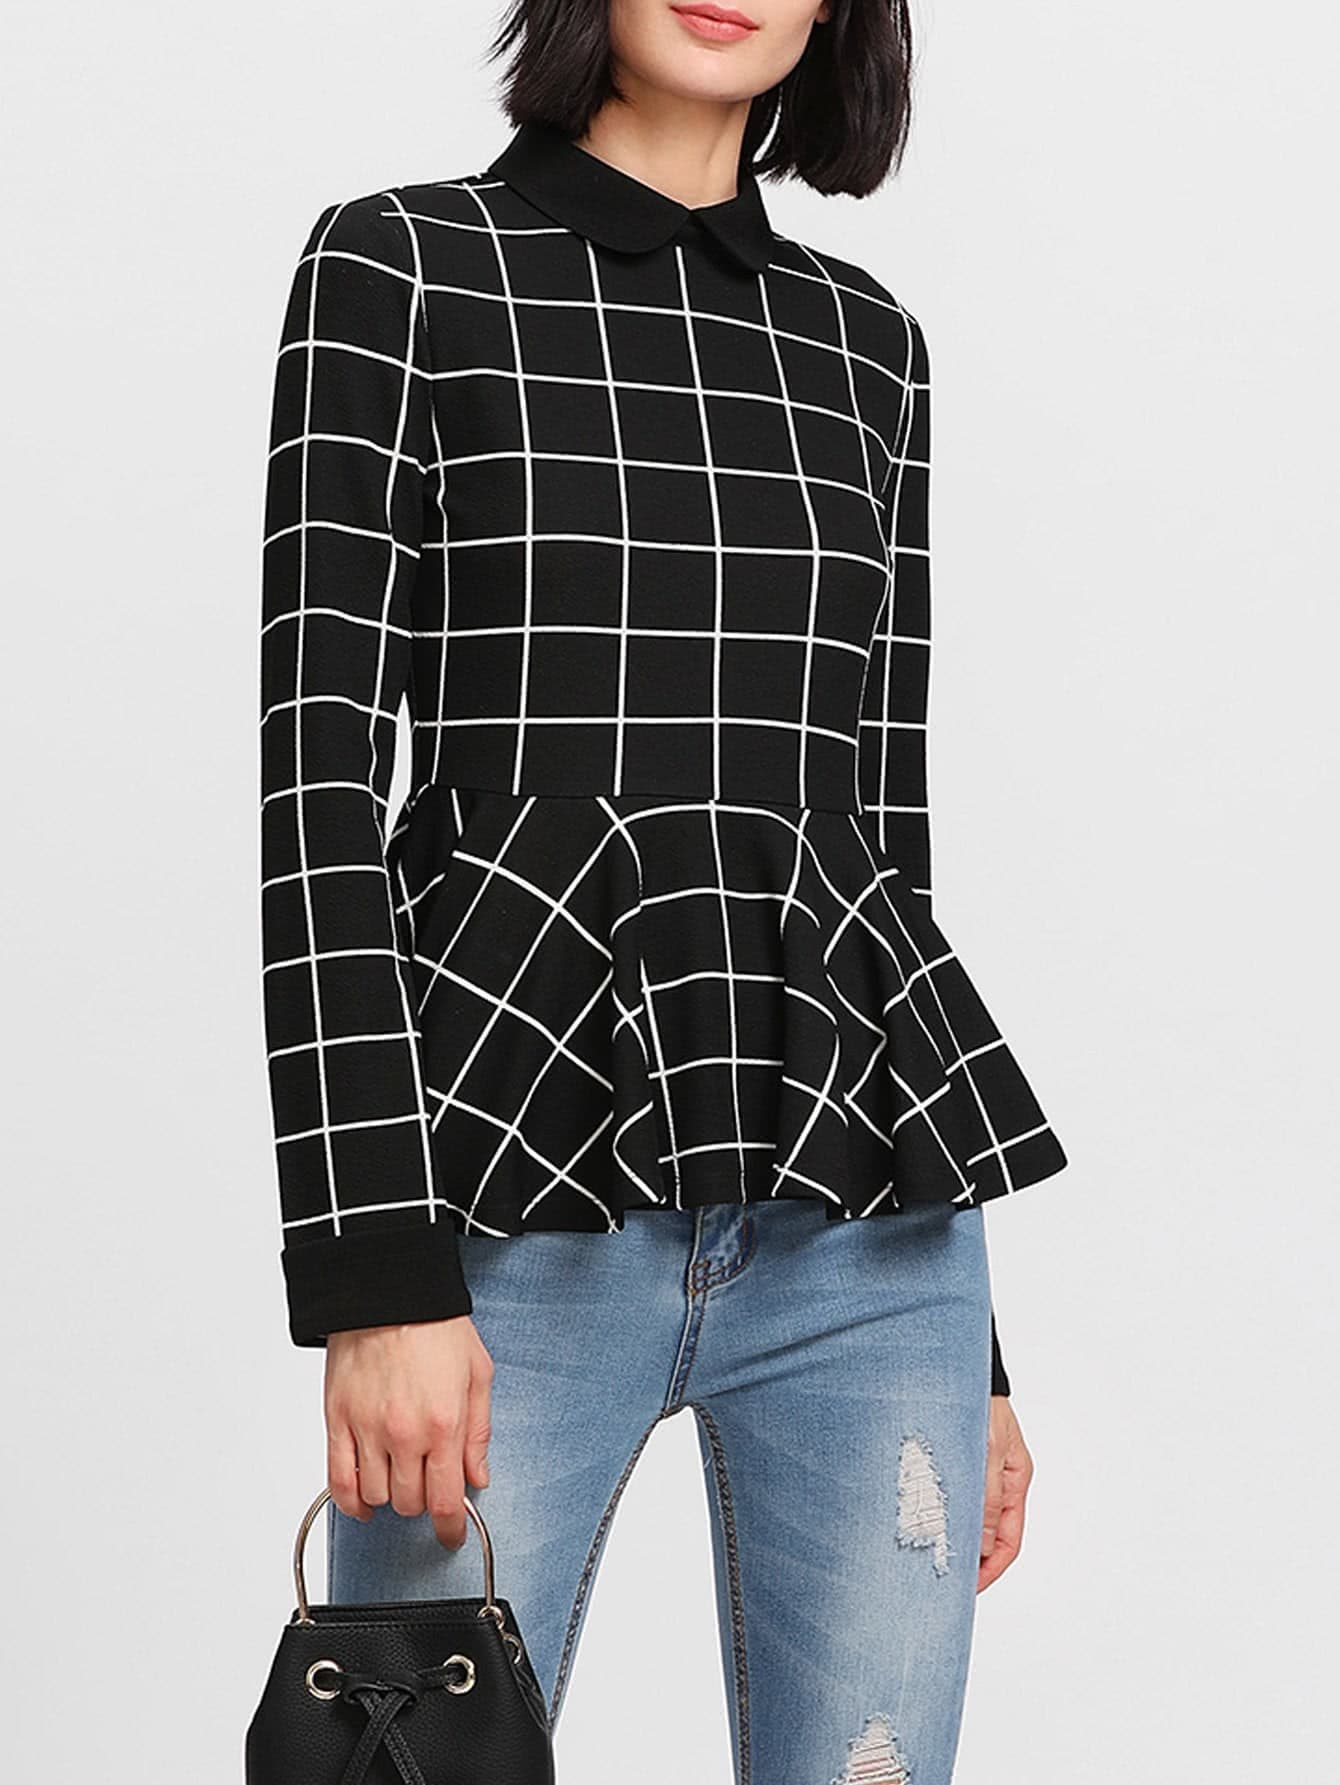 Contrast Collar Grid Peplum Top contrast collar grid peplum top